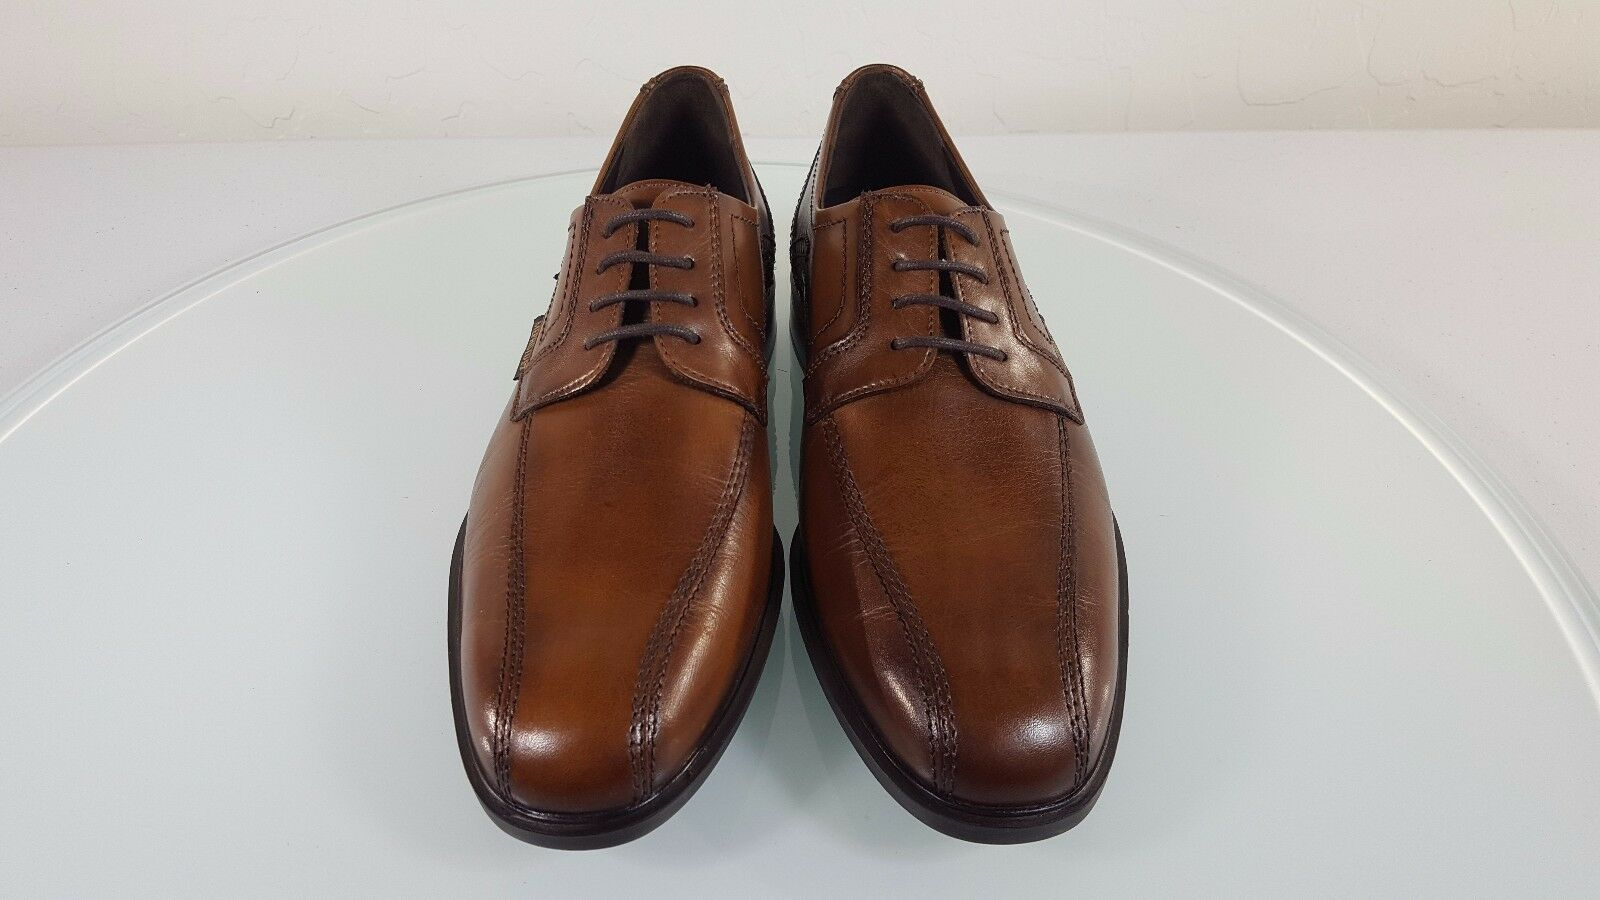 MEPHISTO 'FABIO' MENS BROWN LEATHER BICYCLE TOE OXFORD SHOES 7.5 M